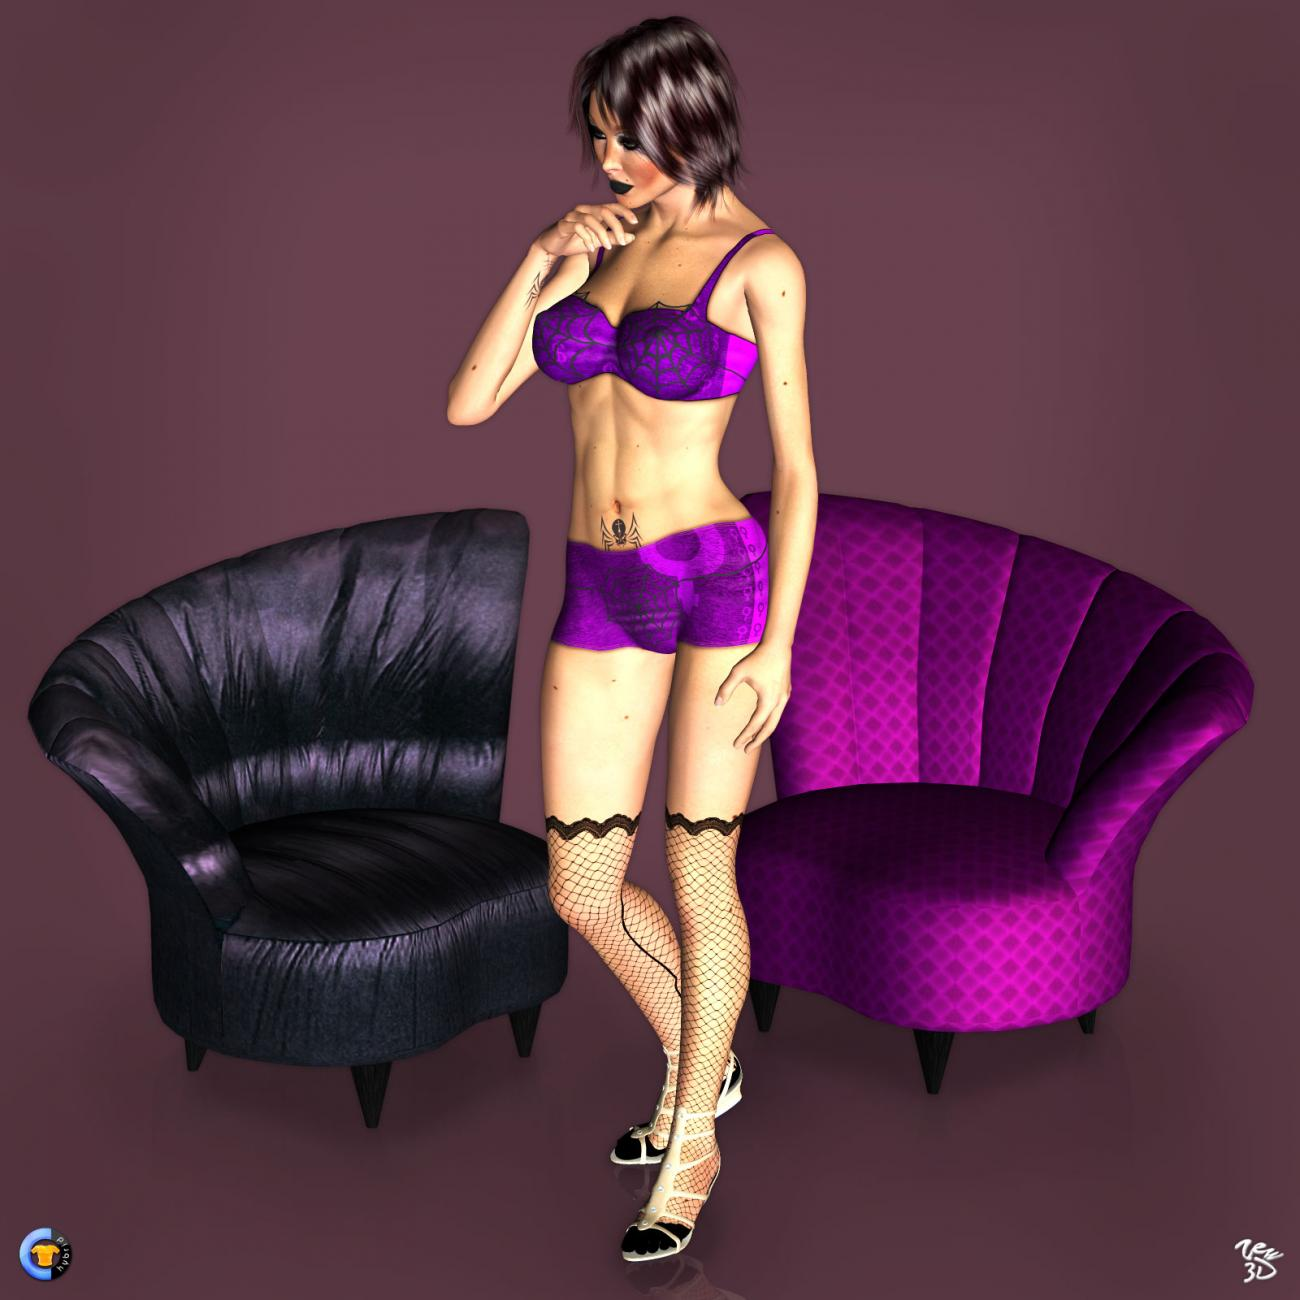 CLOTHER Hybrid - Dark violet by zew3d